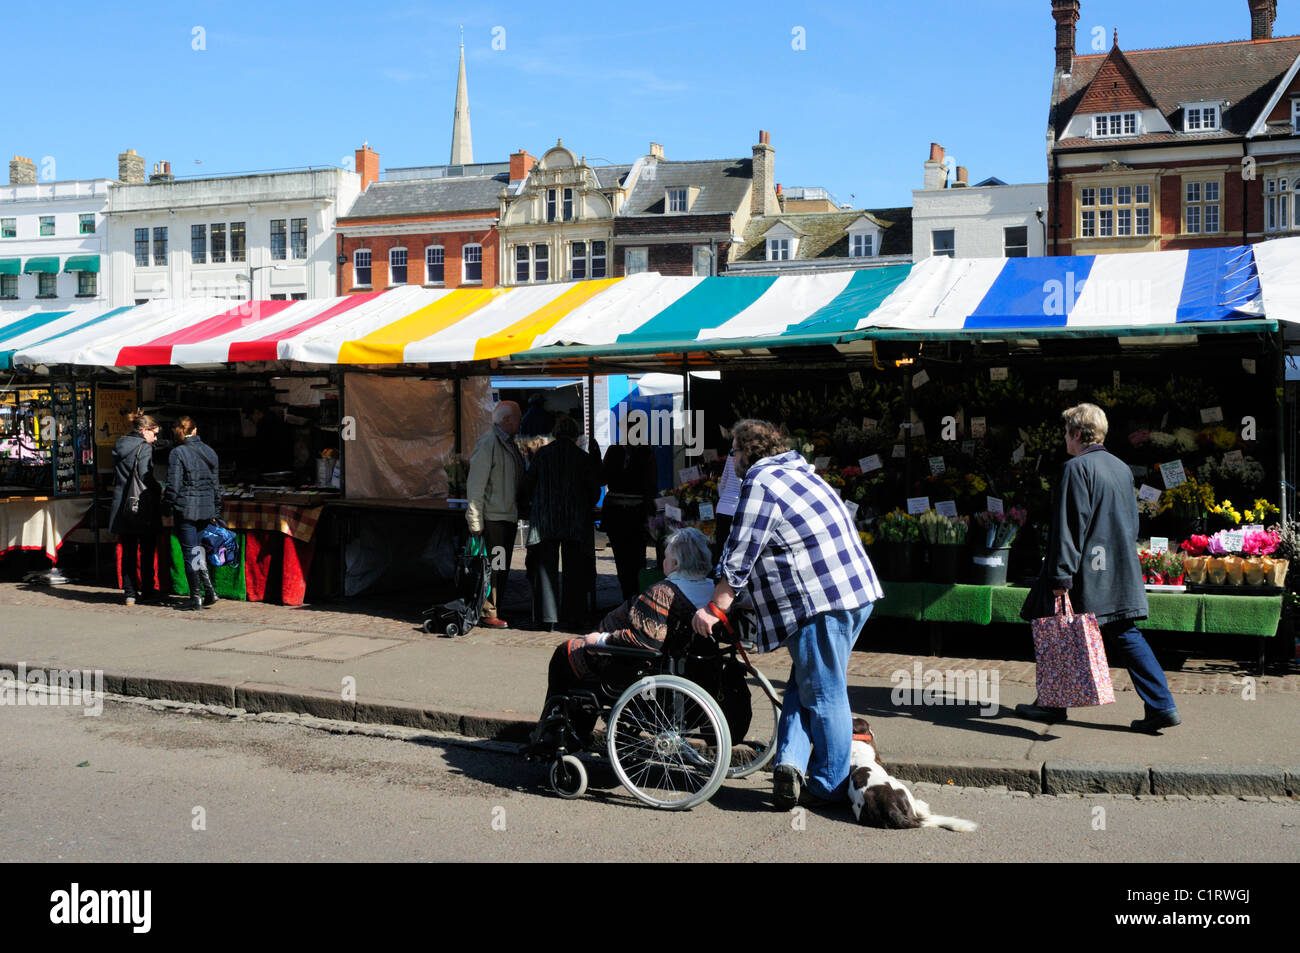 Stalls on the Market, and Man pushing Senior Woman in Wheelchair, Cambridge, England, UK - Stock Image